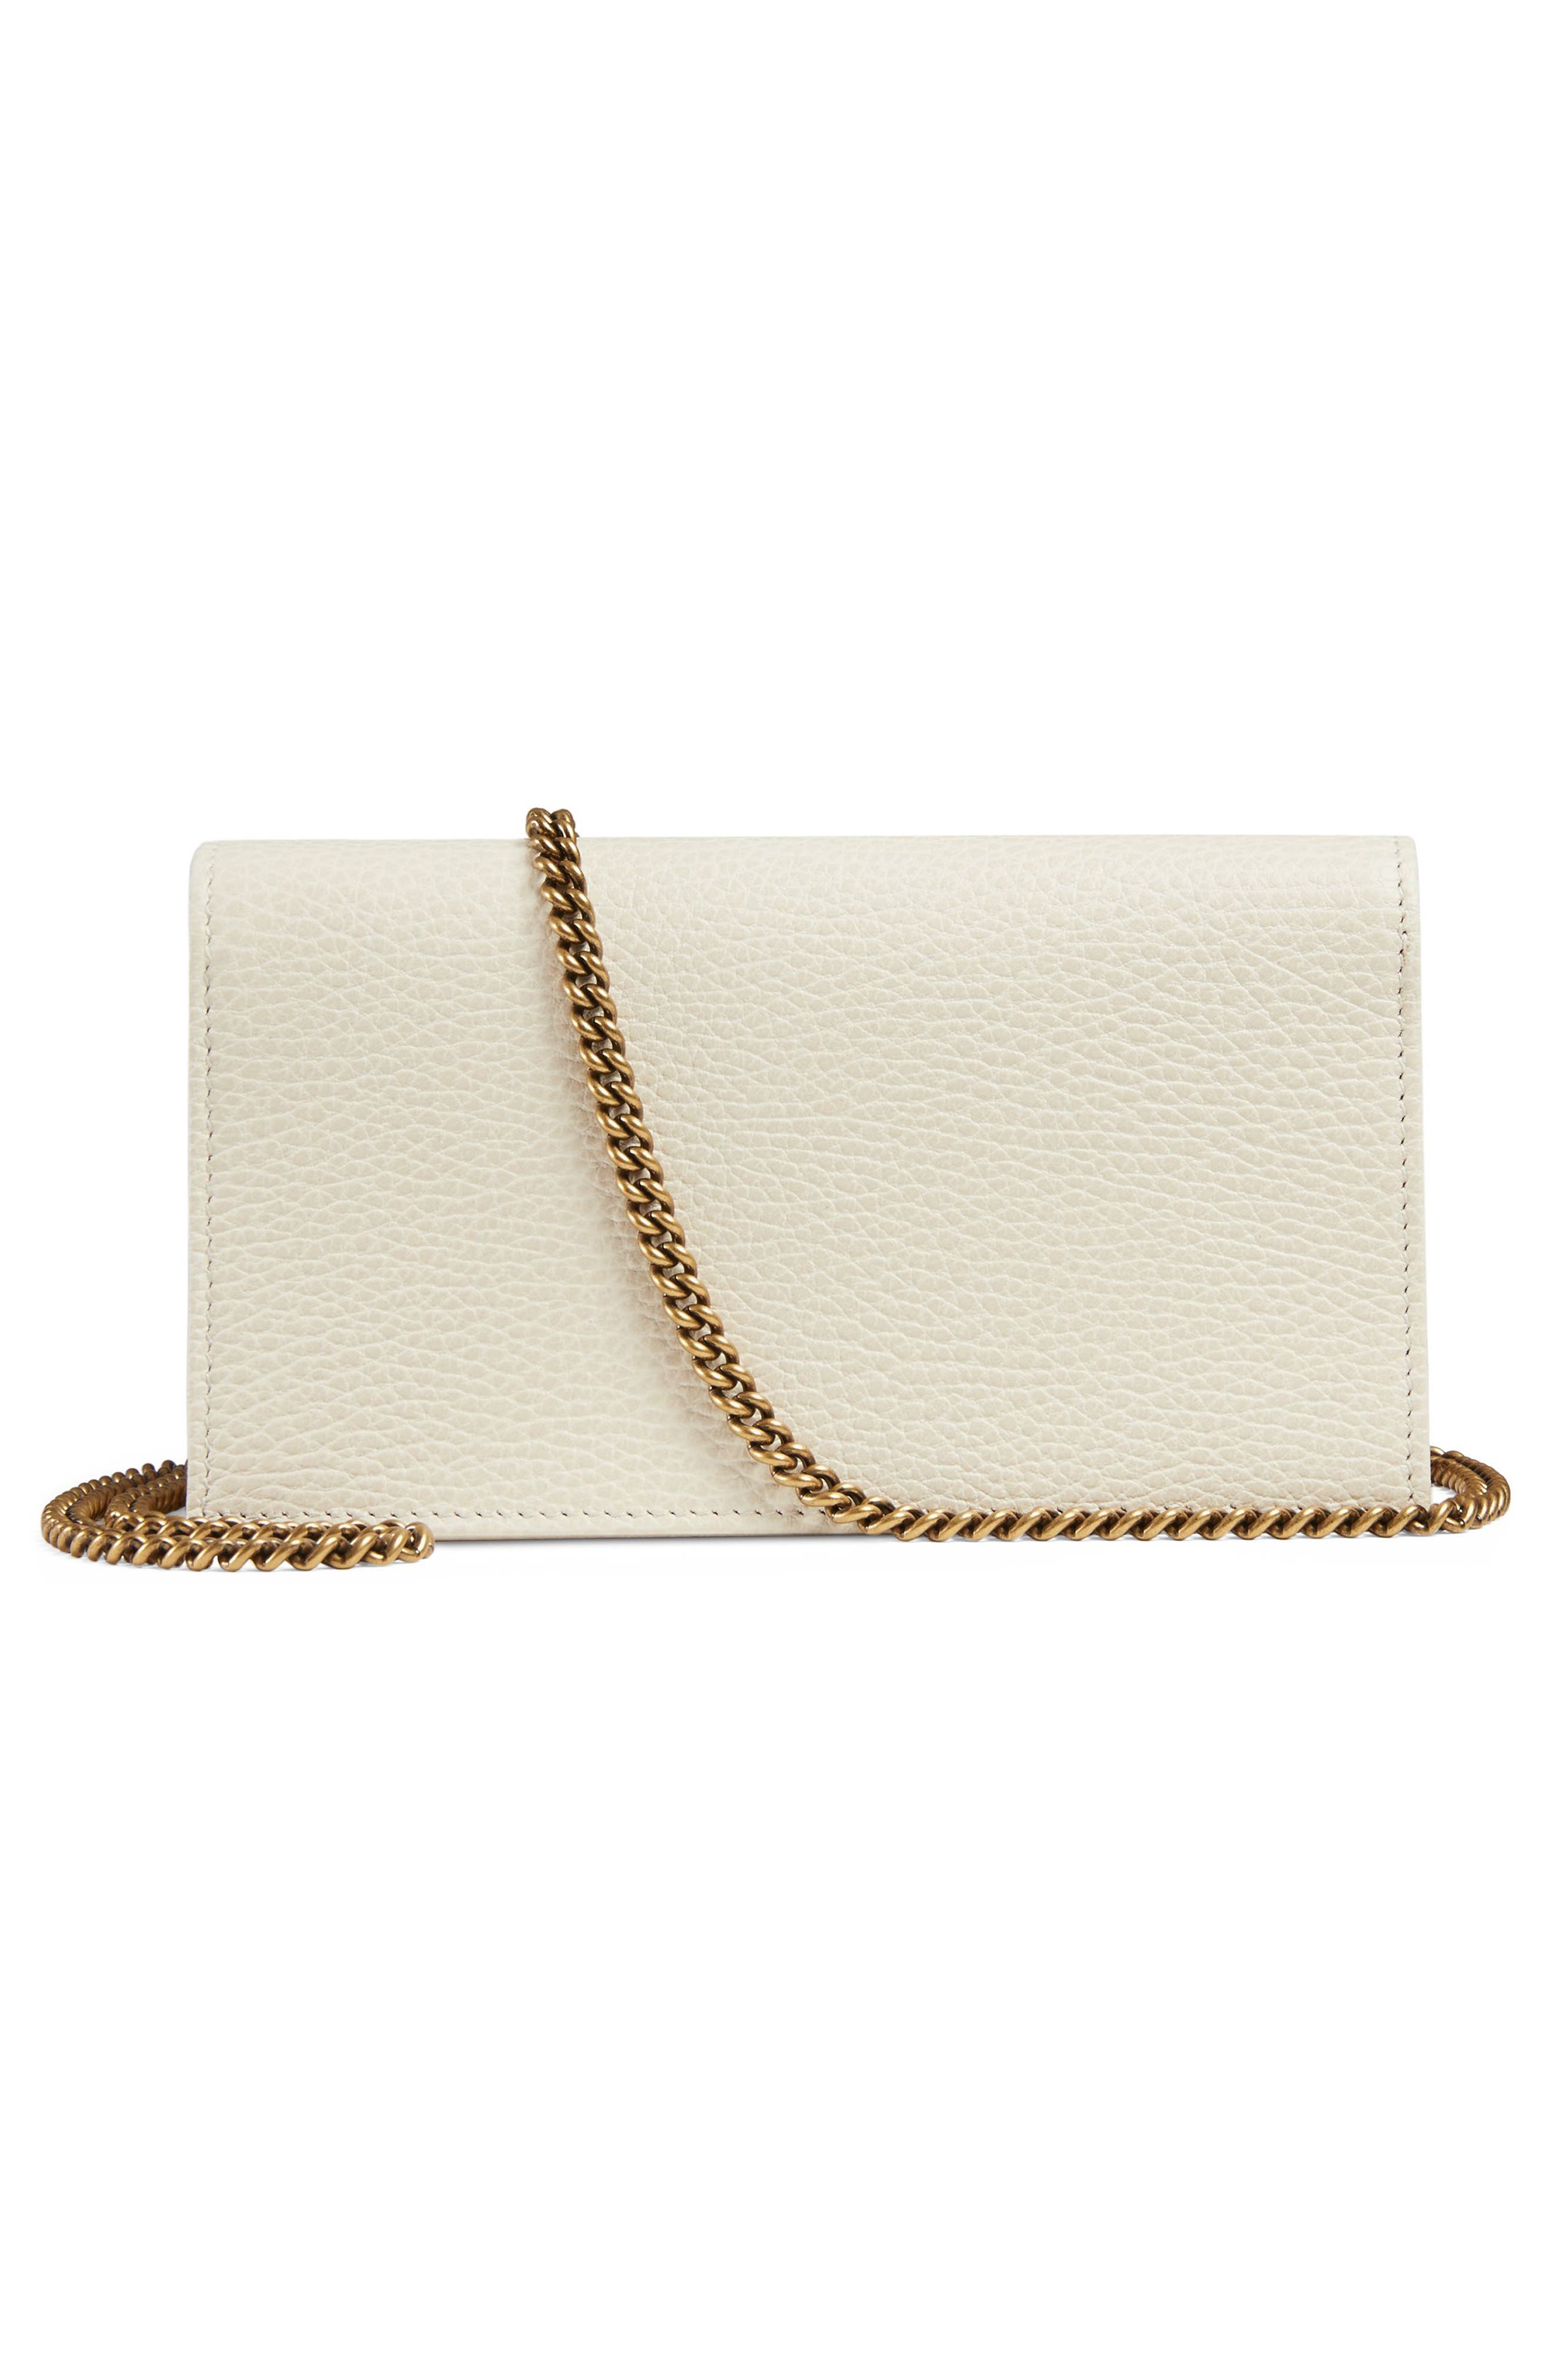 Fiocchino Leather Wallet on a Chain,                             Alternate thumbnail 3, color,                             Mystic White/ Pink/ Crystal